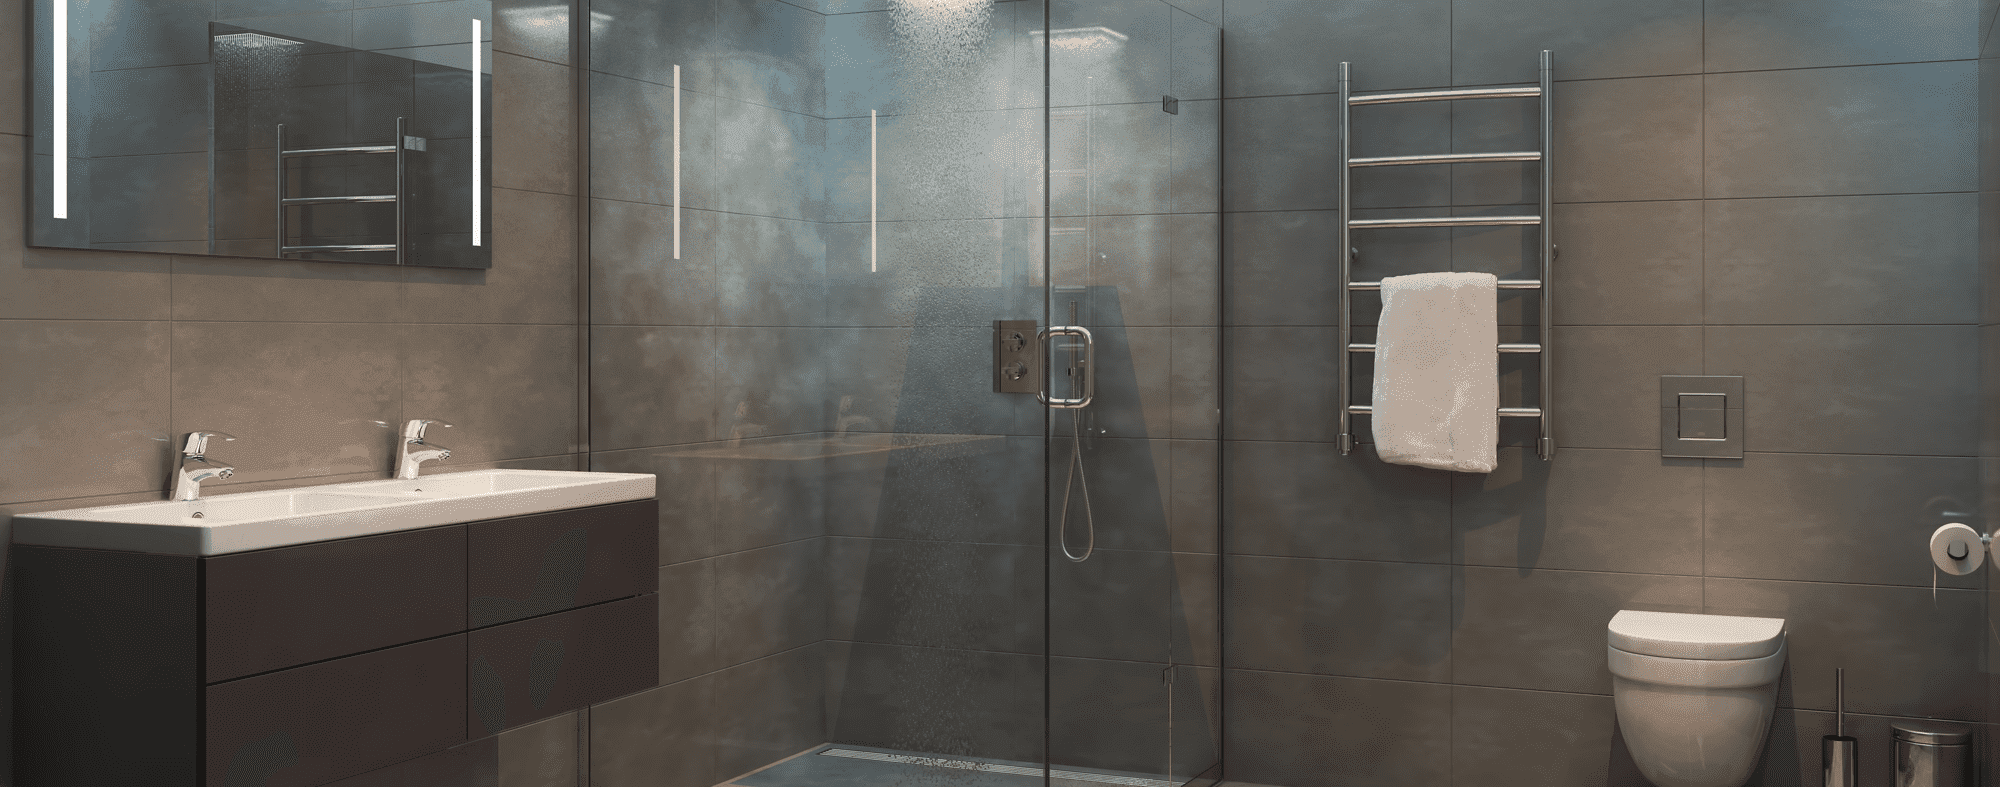 Ready To Remodel Here Are The Hottest Bathroom Trends For Spring 2018